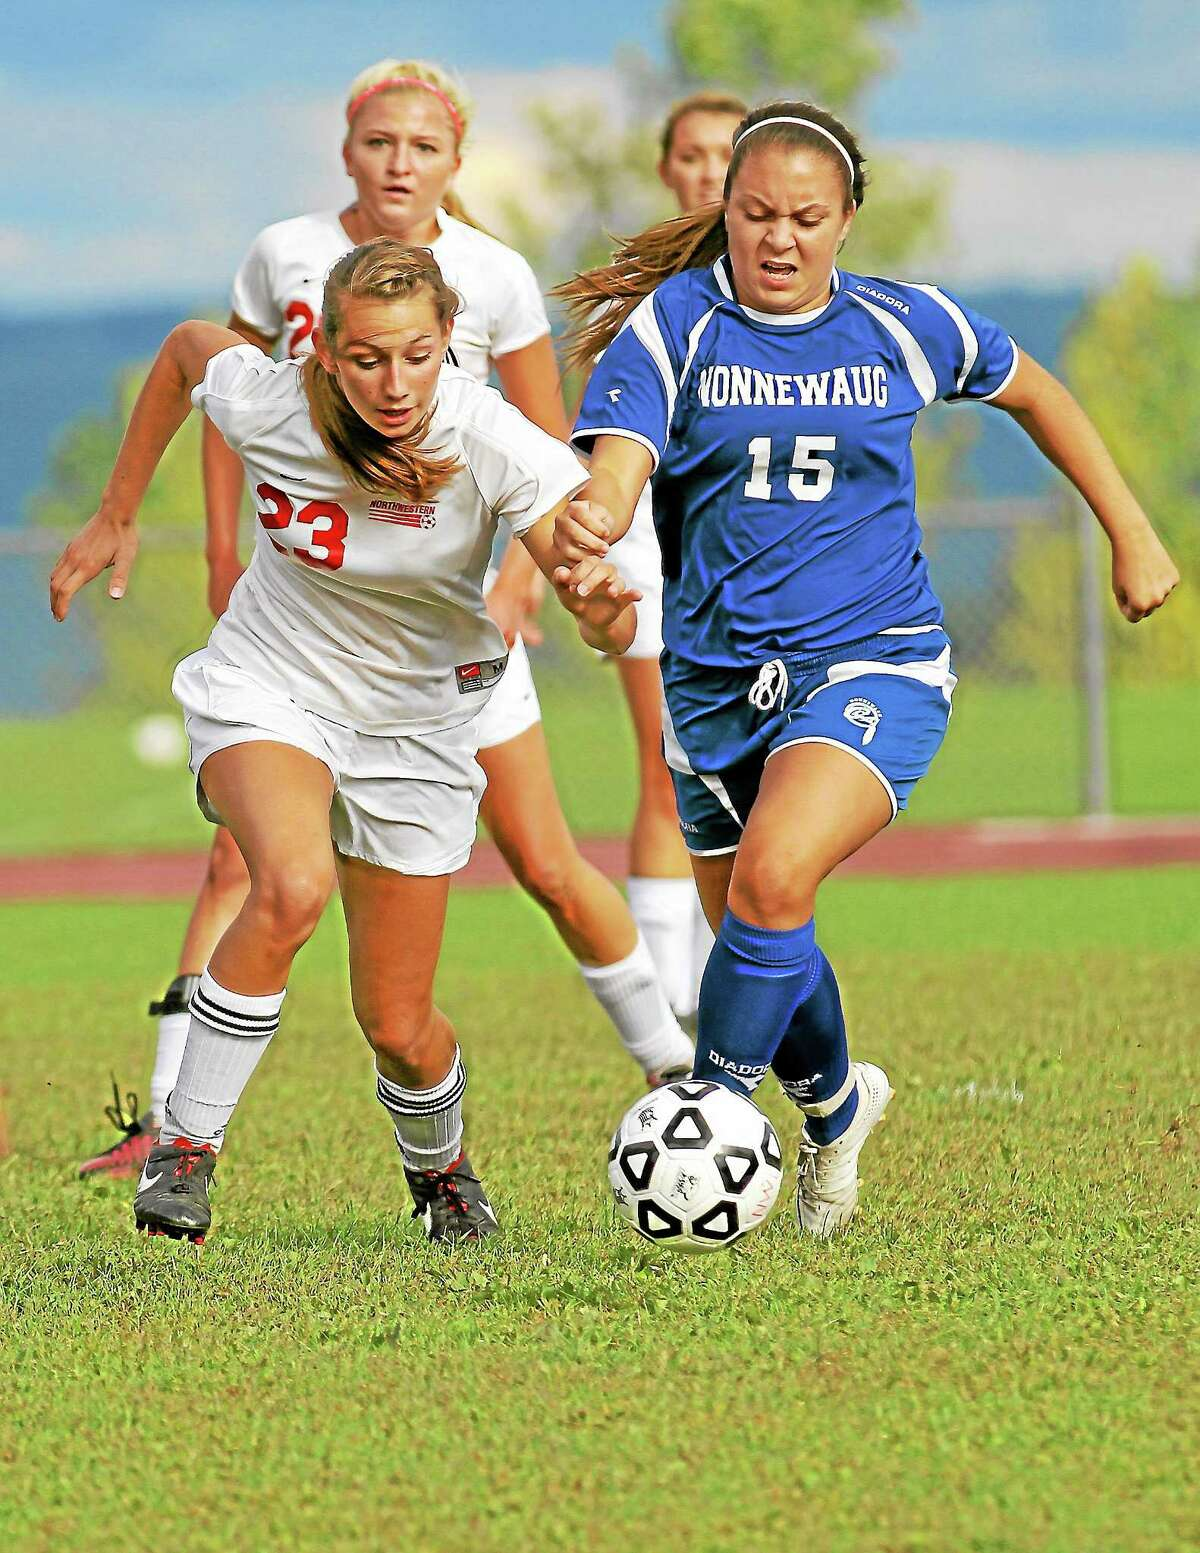 Olivia Mecca (23) and Catherine Flanagan (15) tough it out for control of the ball in Monday afternoon's game at in Winsted.